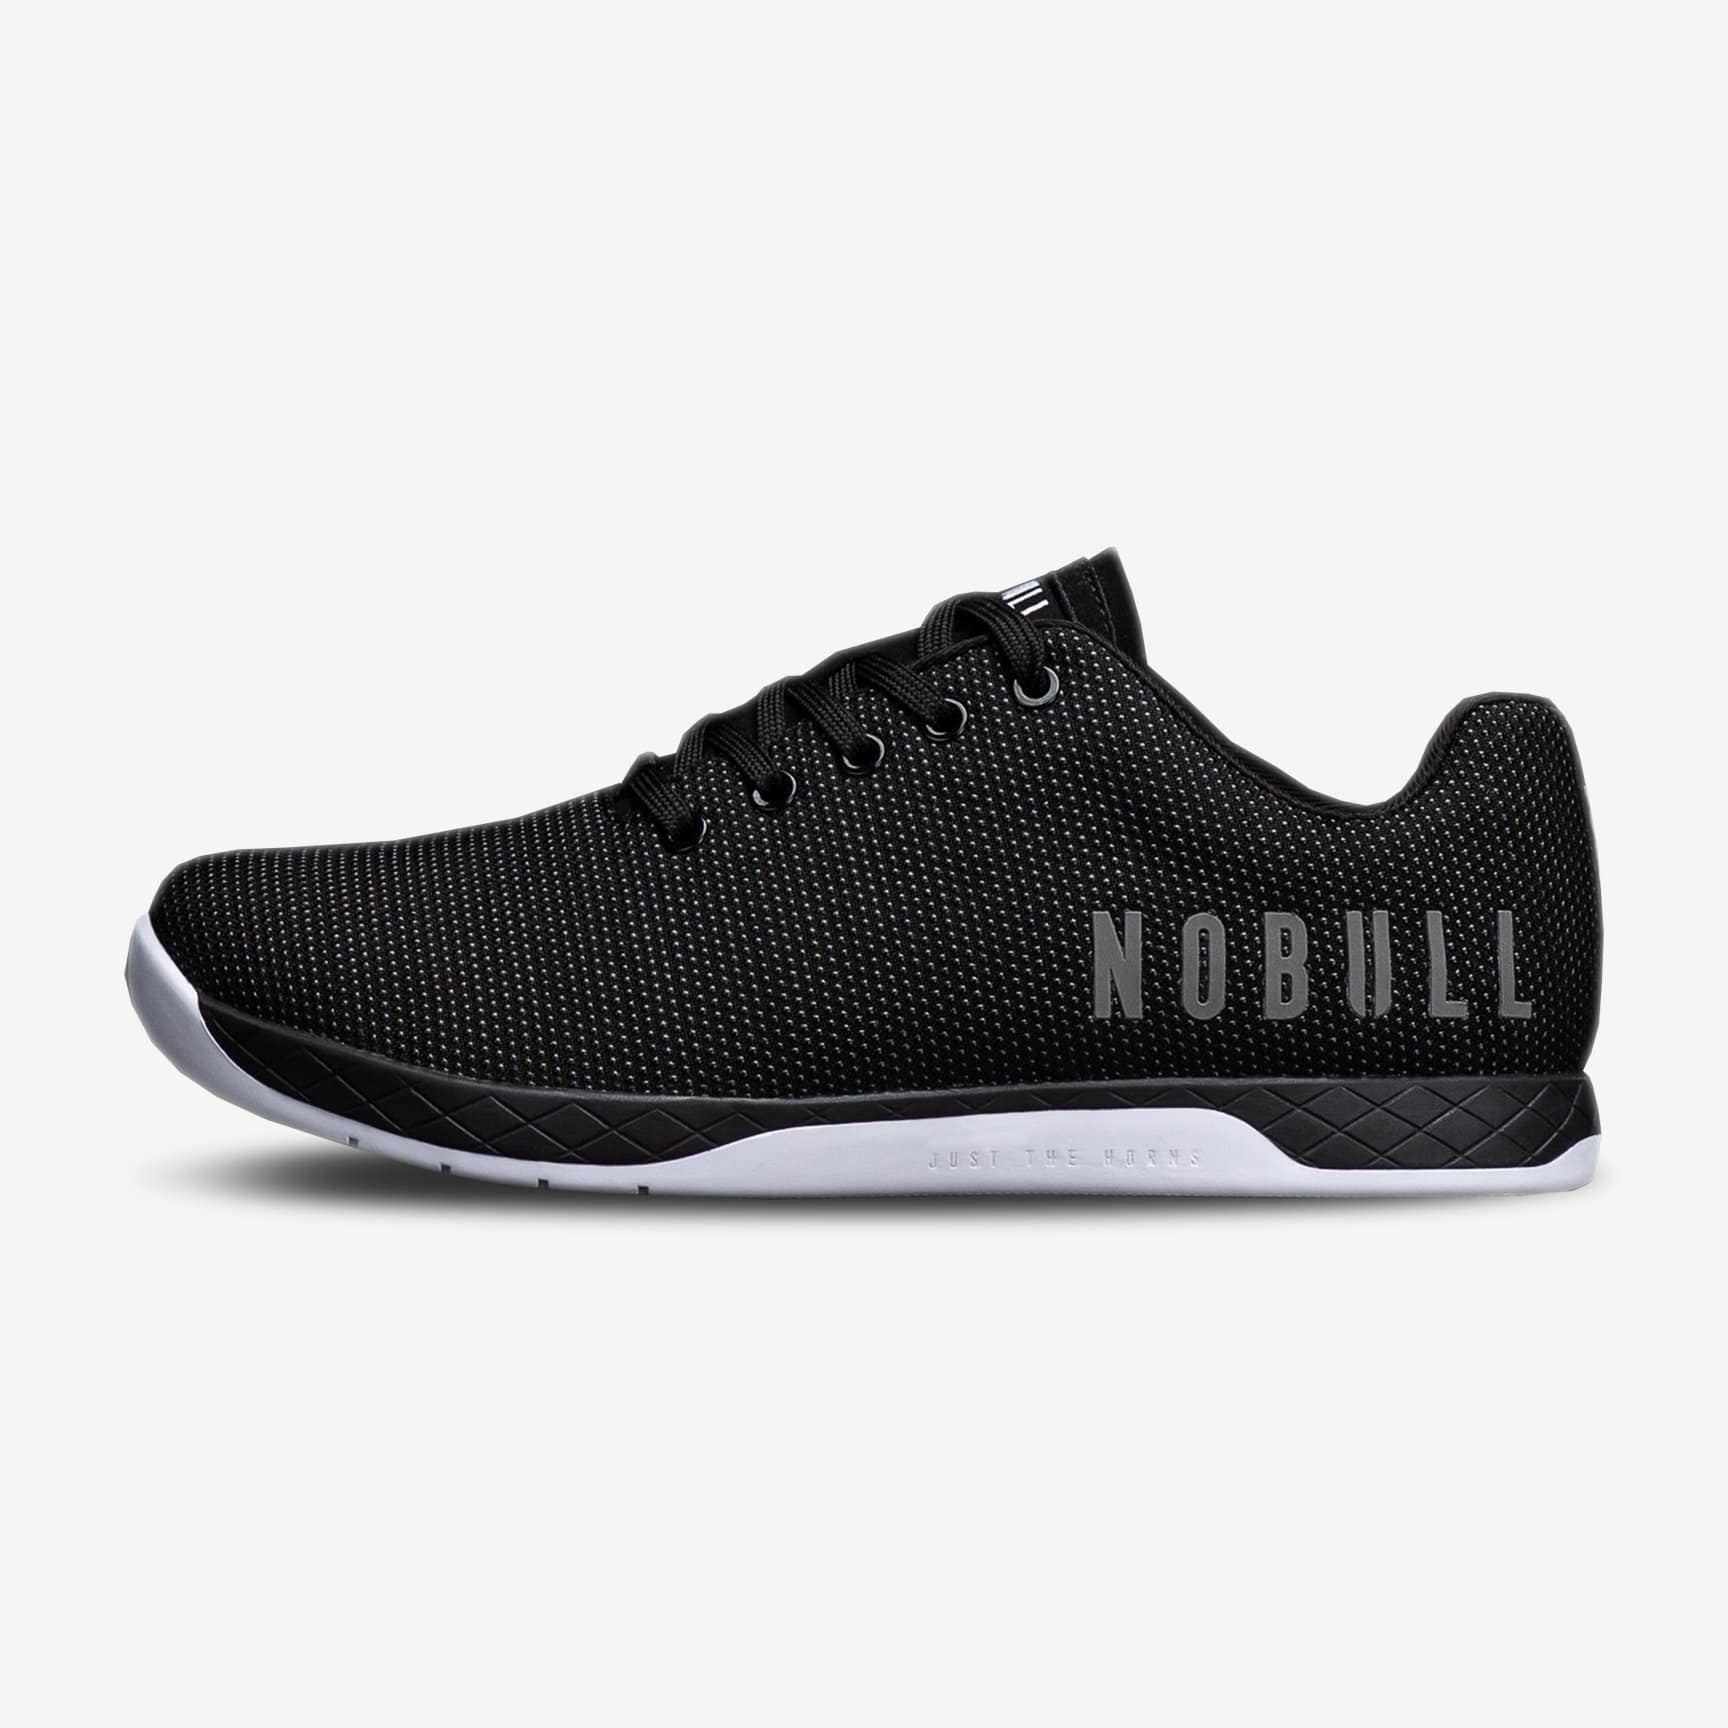 NOBULL Trainers NOBULL Black White Trainer